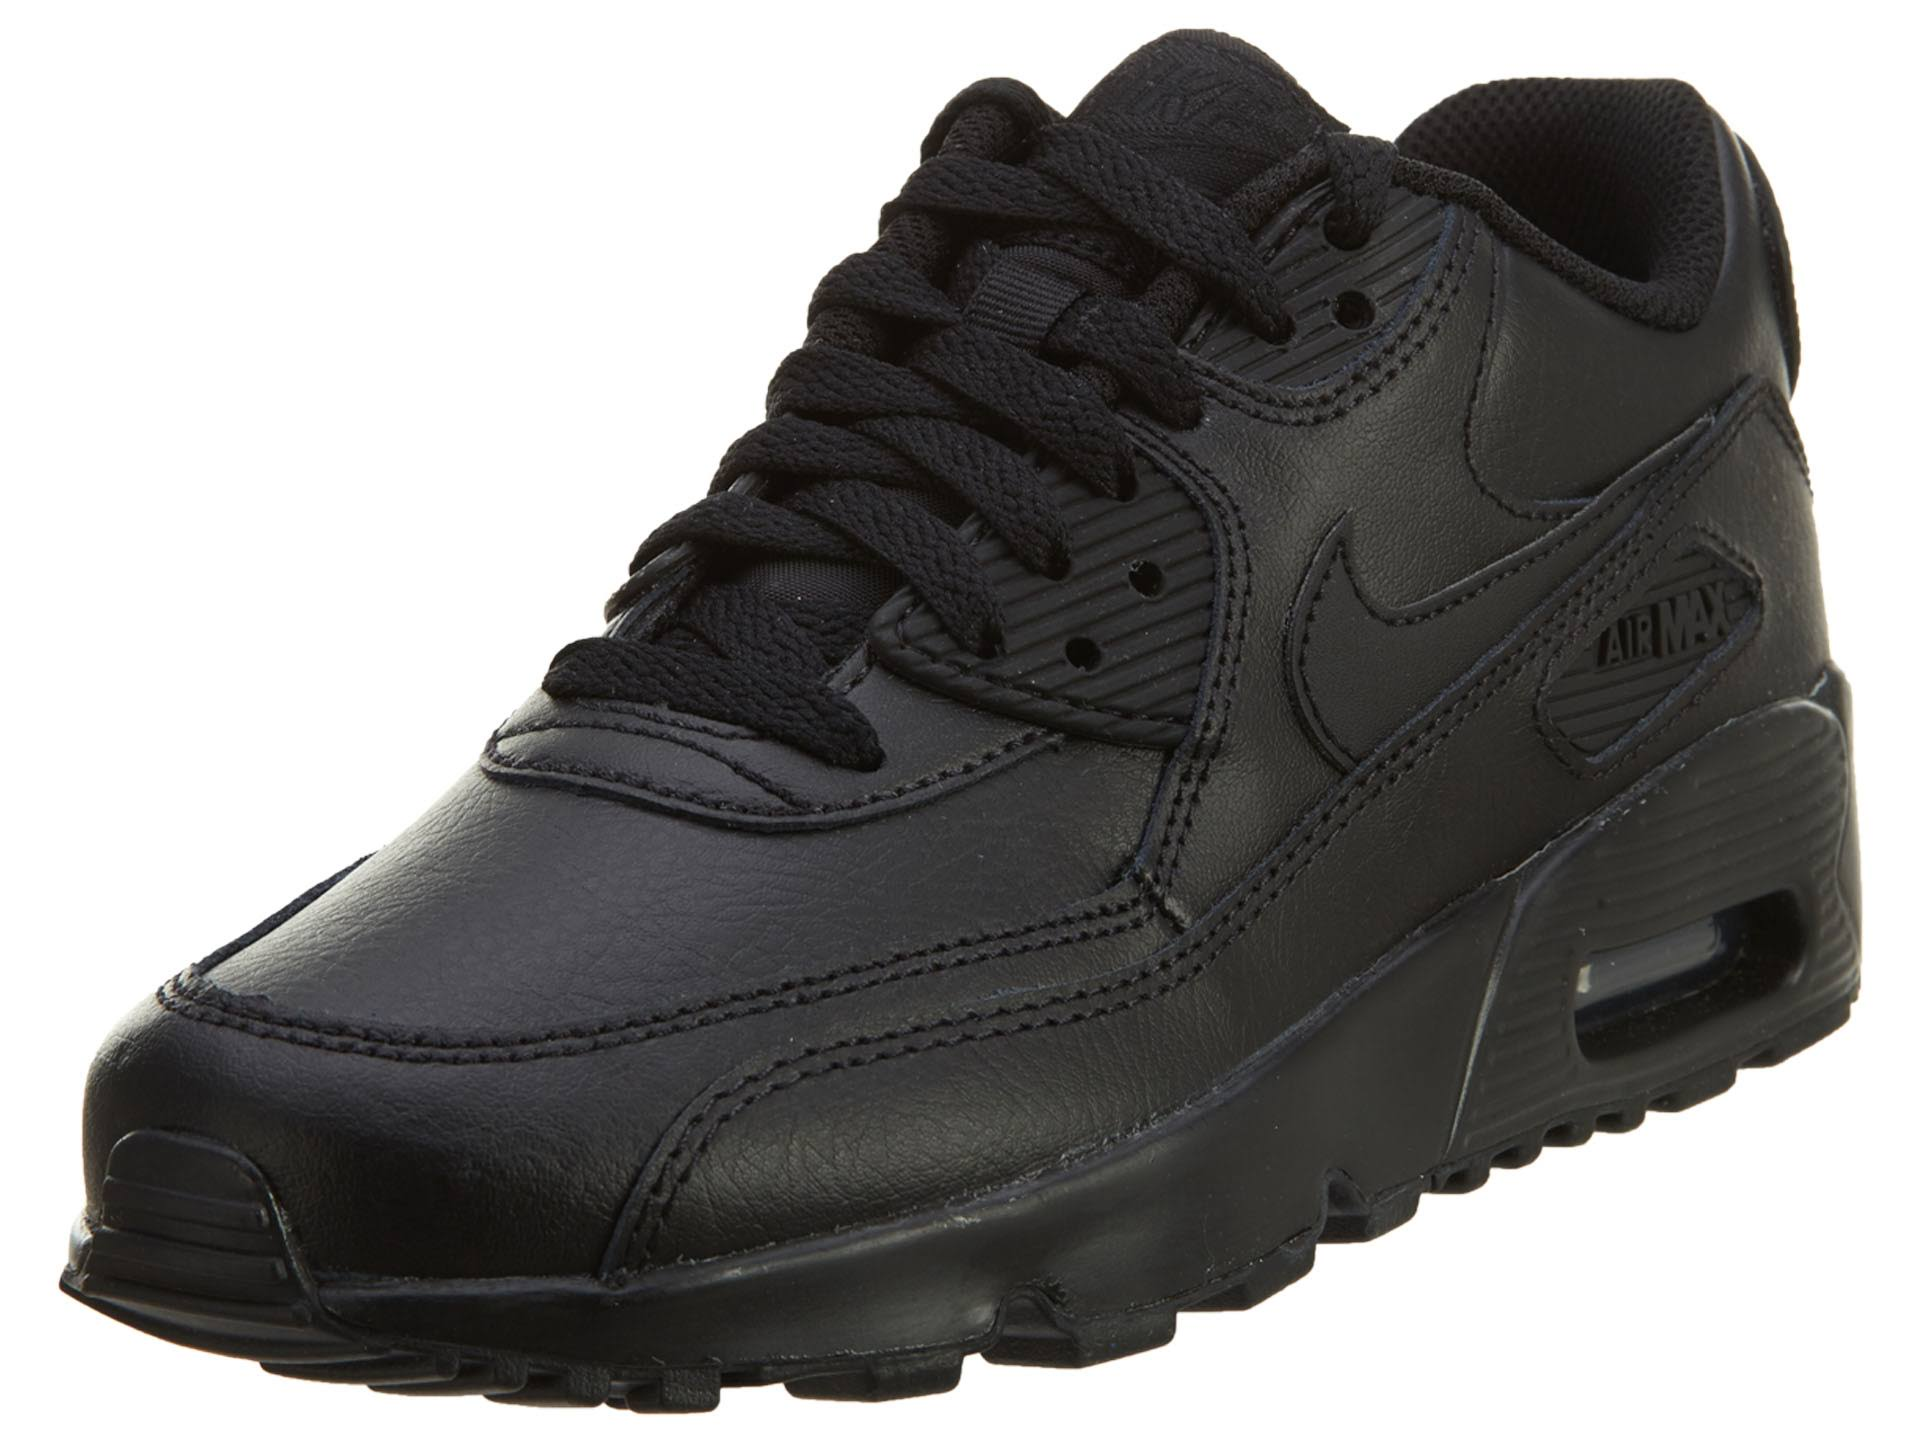 Max Air Nike 90 NeroN Leat BrdxeCo